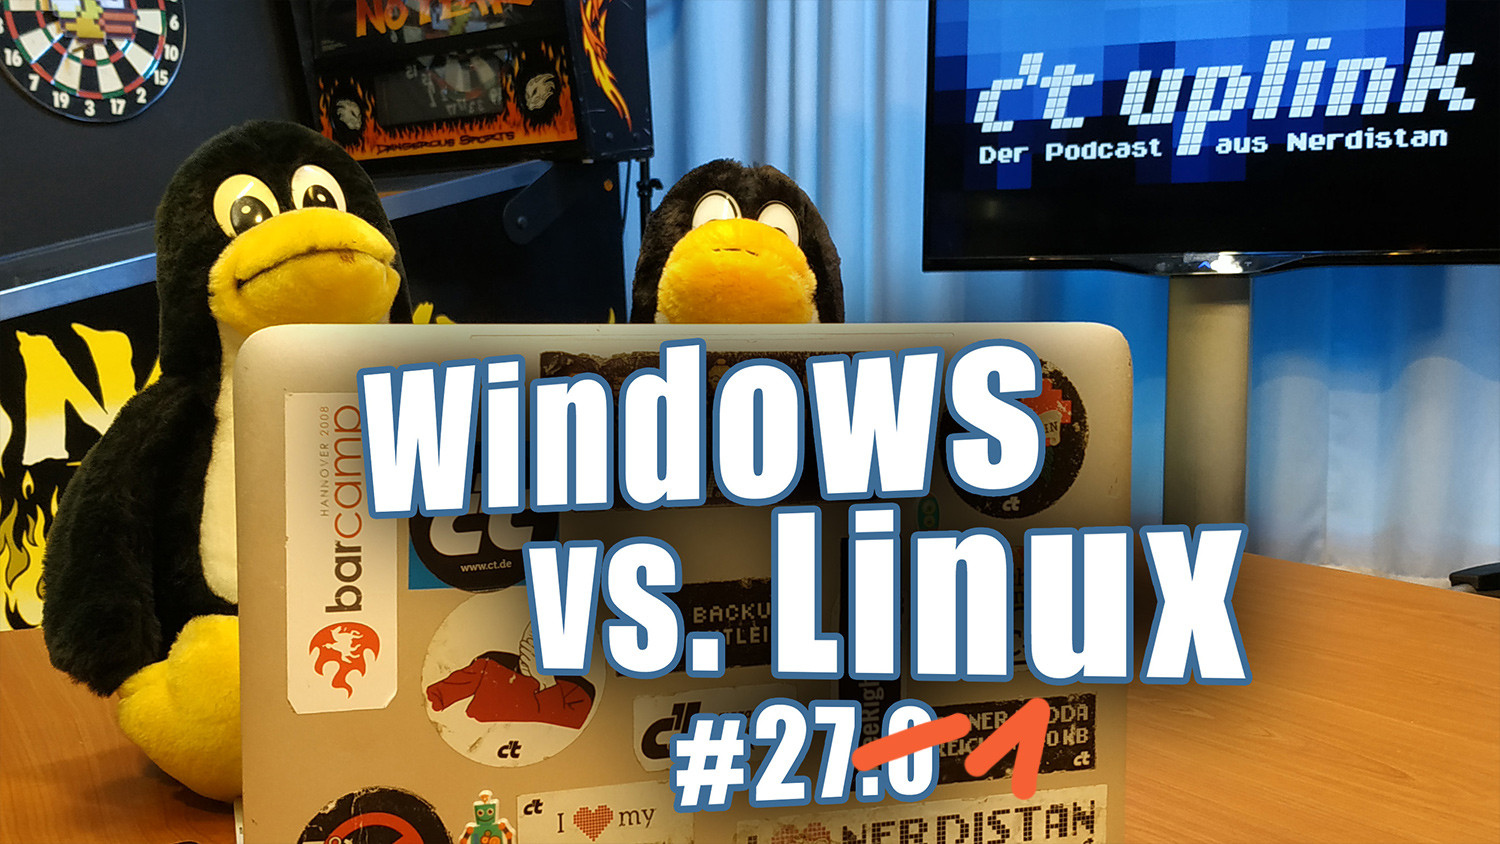 c't uplink 27.1: Windows vs. Linux, Dating-Apps, DIN-A3-Scanner